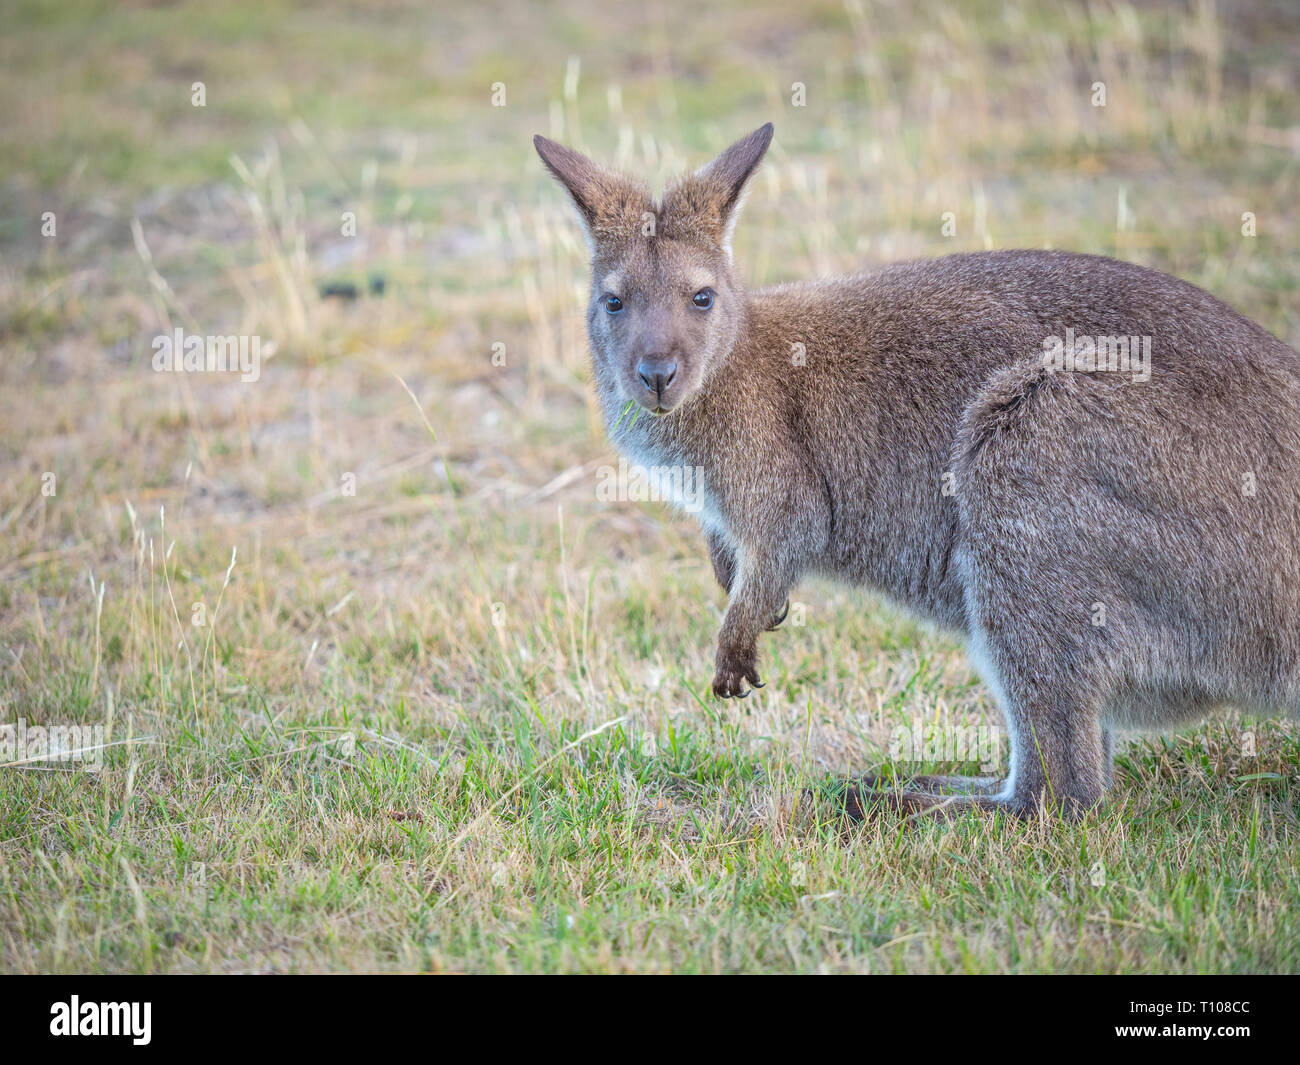 The red-necked wallaby or Bennetts wallaby (Macropus rufogriseus) is a medium-sized macropod marsupial found in Australia. Stock Photo